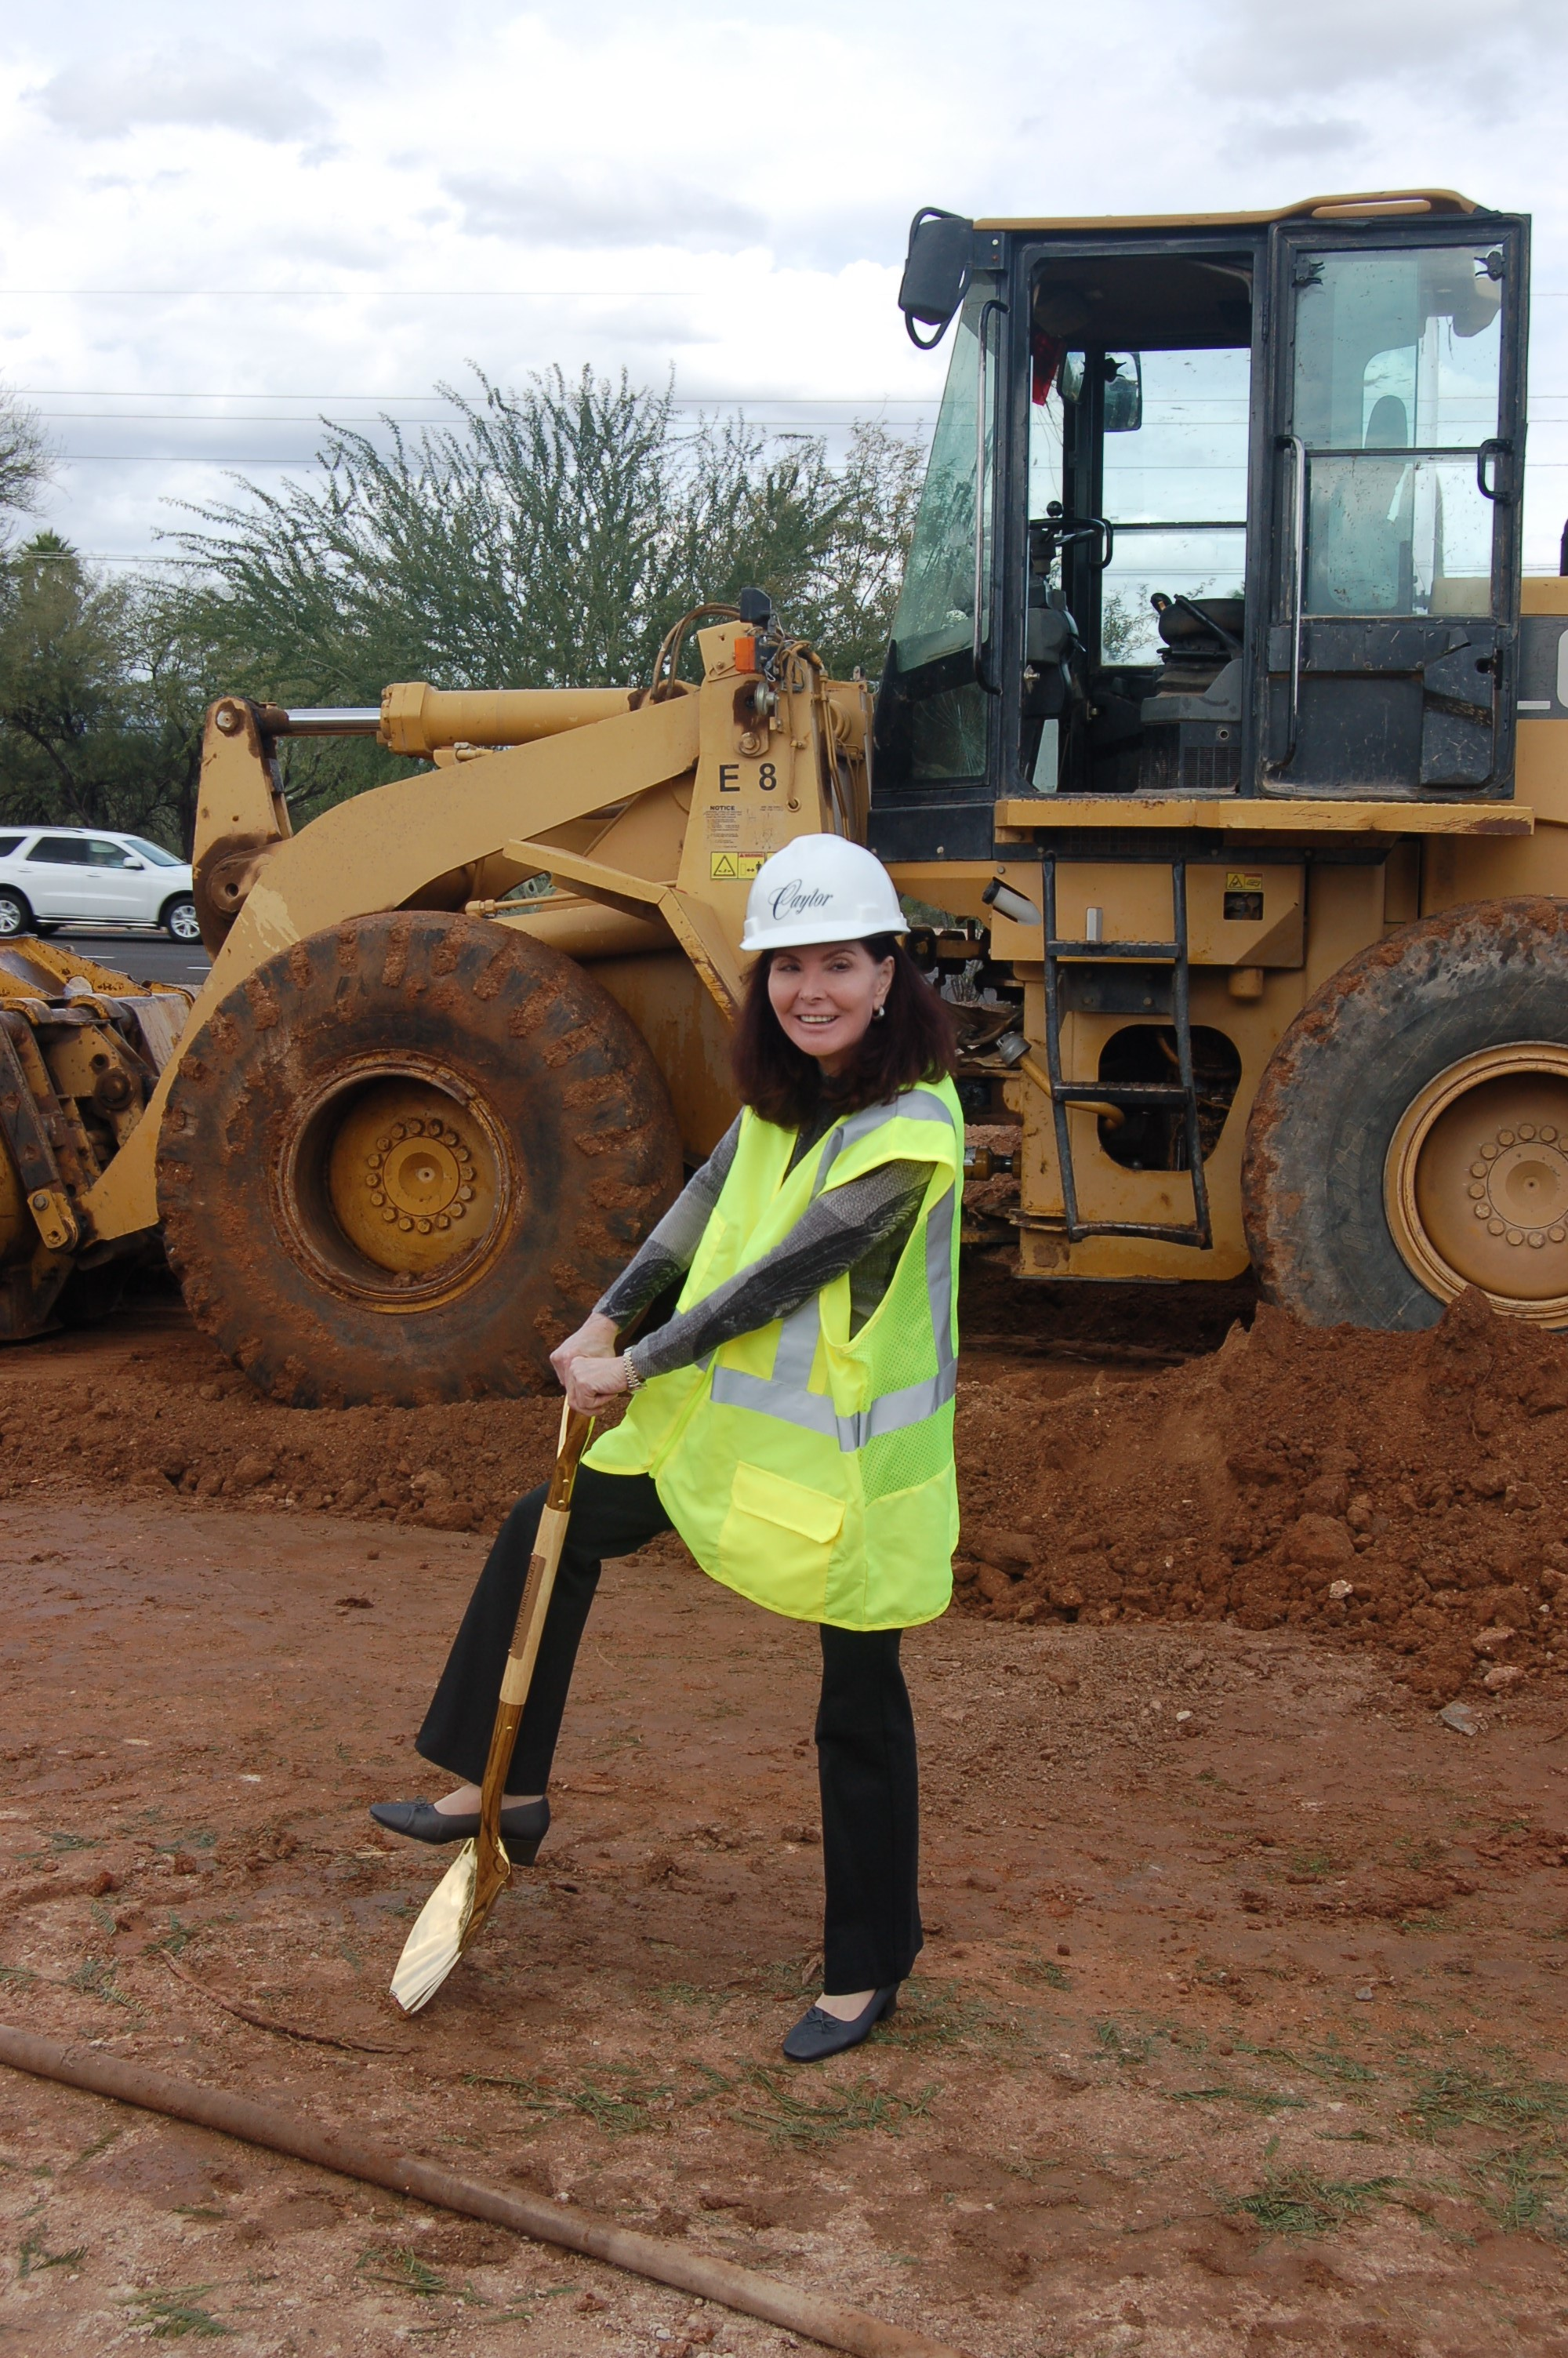 Dr. Courtney breaking ground on the new building site!